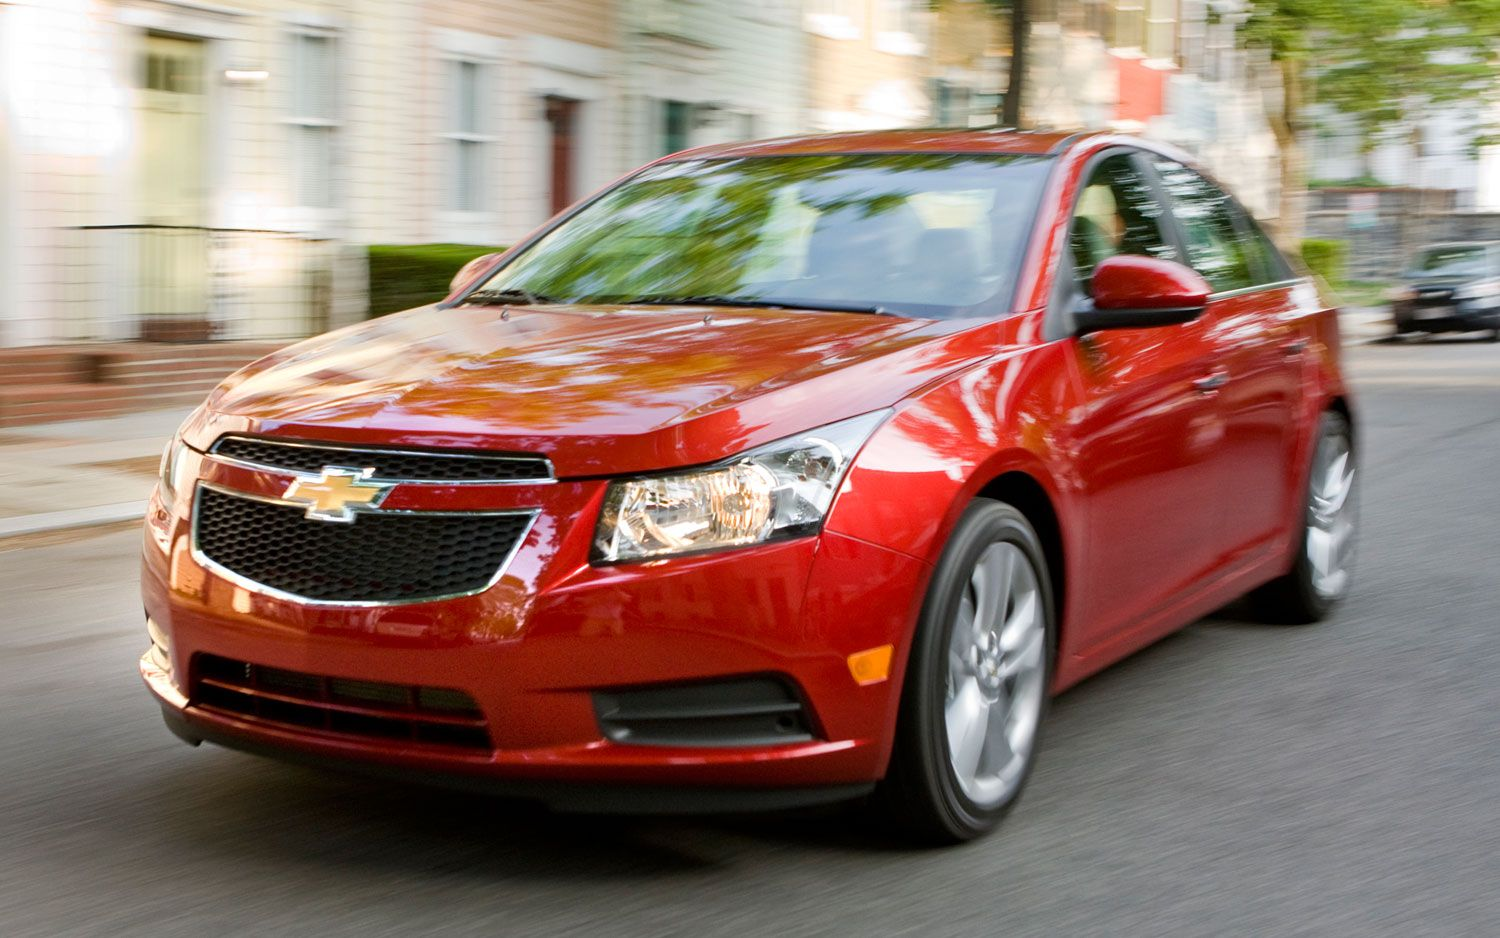 Chevy cruz 2013 epa estimated available mpg 42 eco highway at 42 mpg